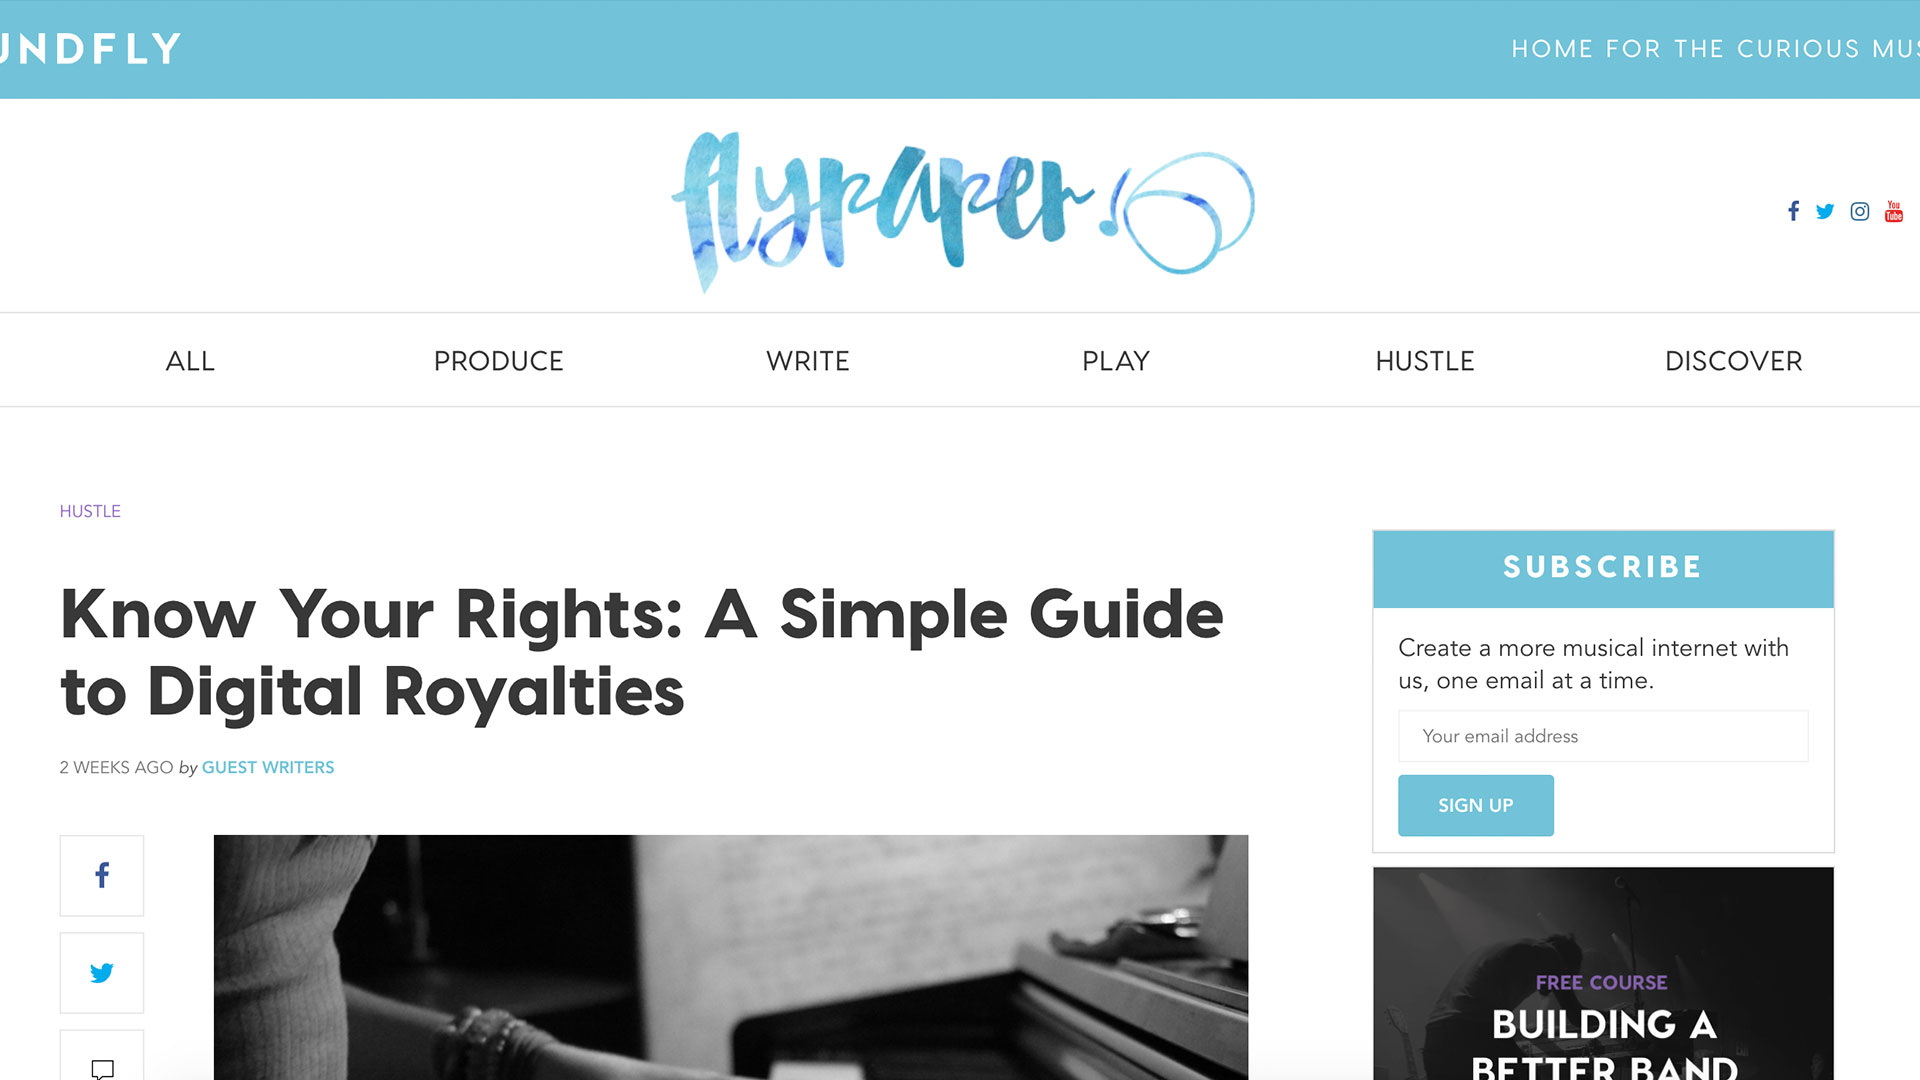 Fairness Rocks News Know Your Rights: A Simple Guide to Digital Royalties